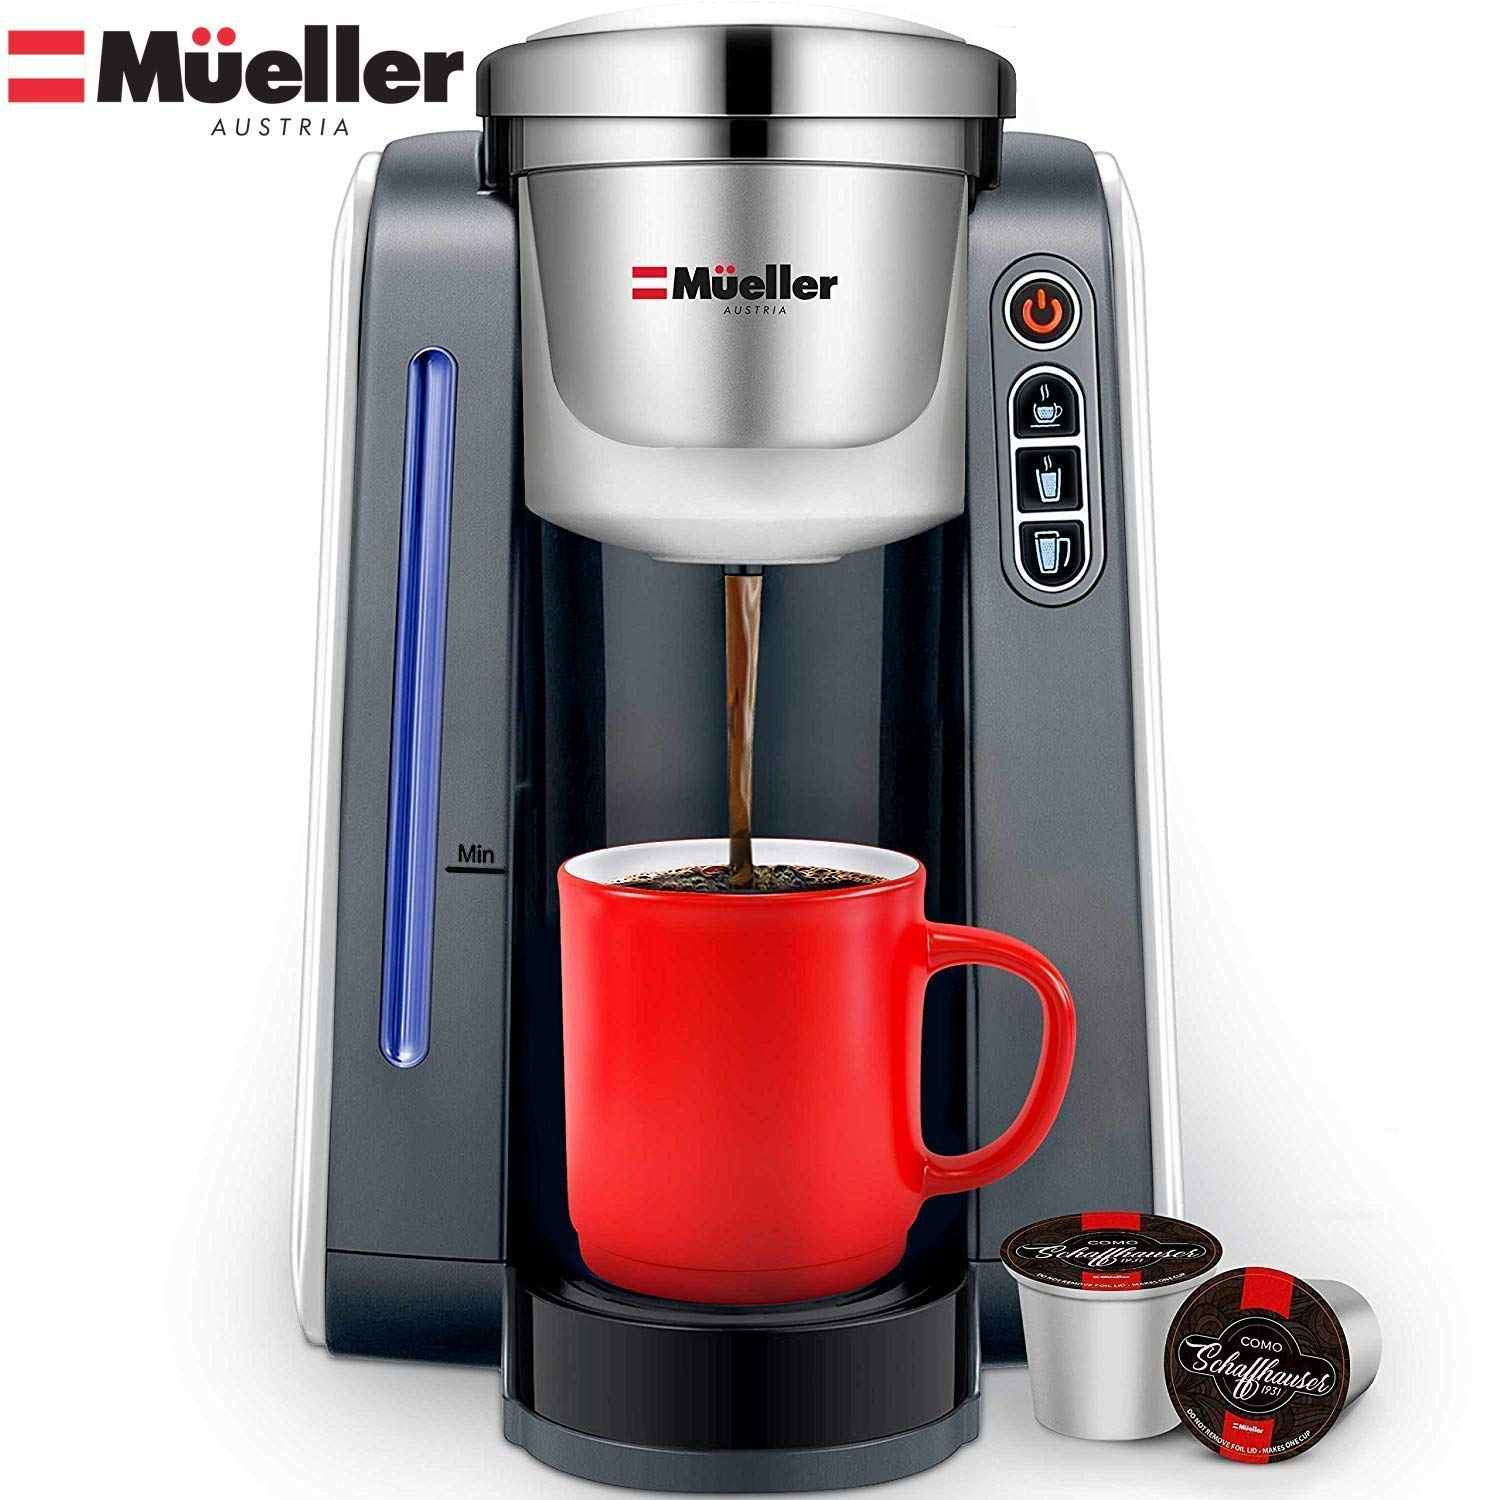 Mueller Ultima Single Serve Pod Compatible Coffee Maker Machine With 4 Brew Sizes for 1.0 and 2.0 Pods. Rapid Brew Technology with Large Removable 48 oz Water Tank by Mueller Austria